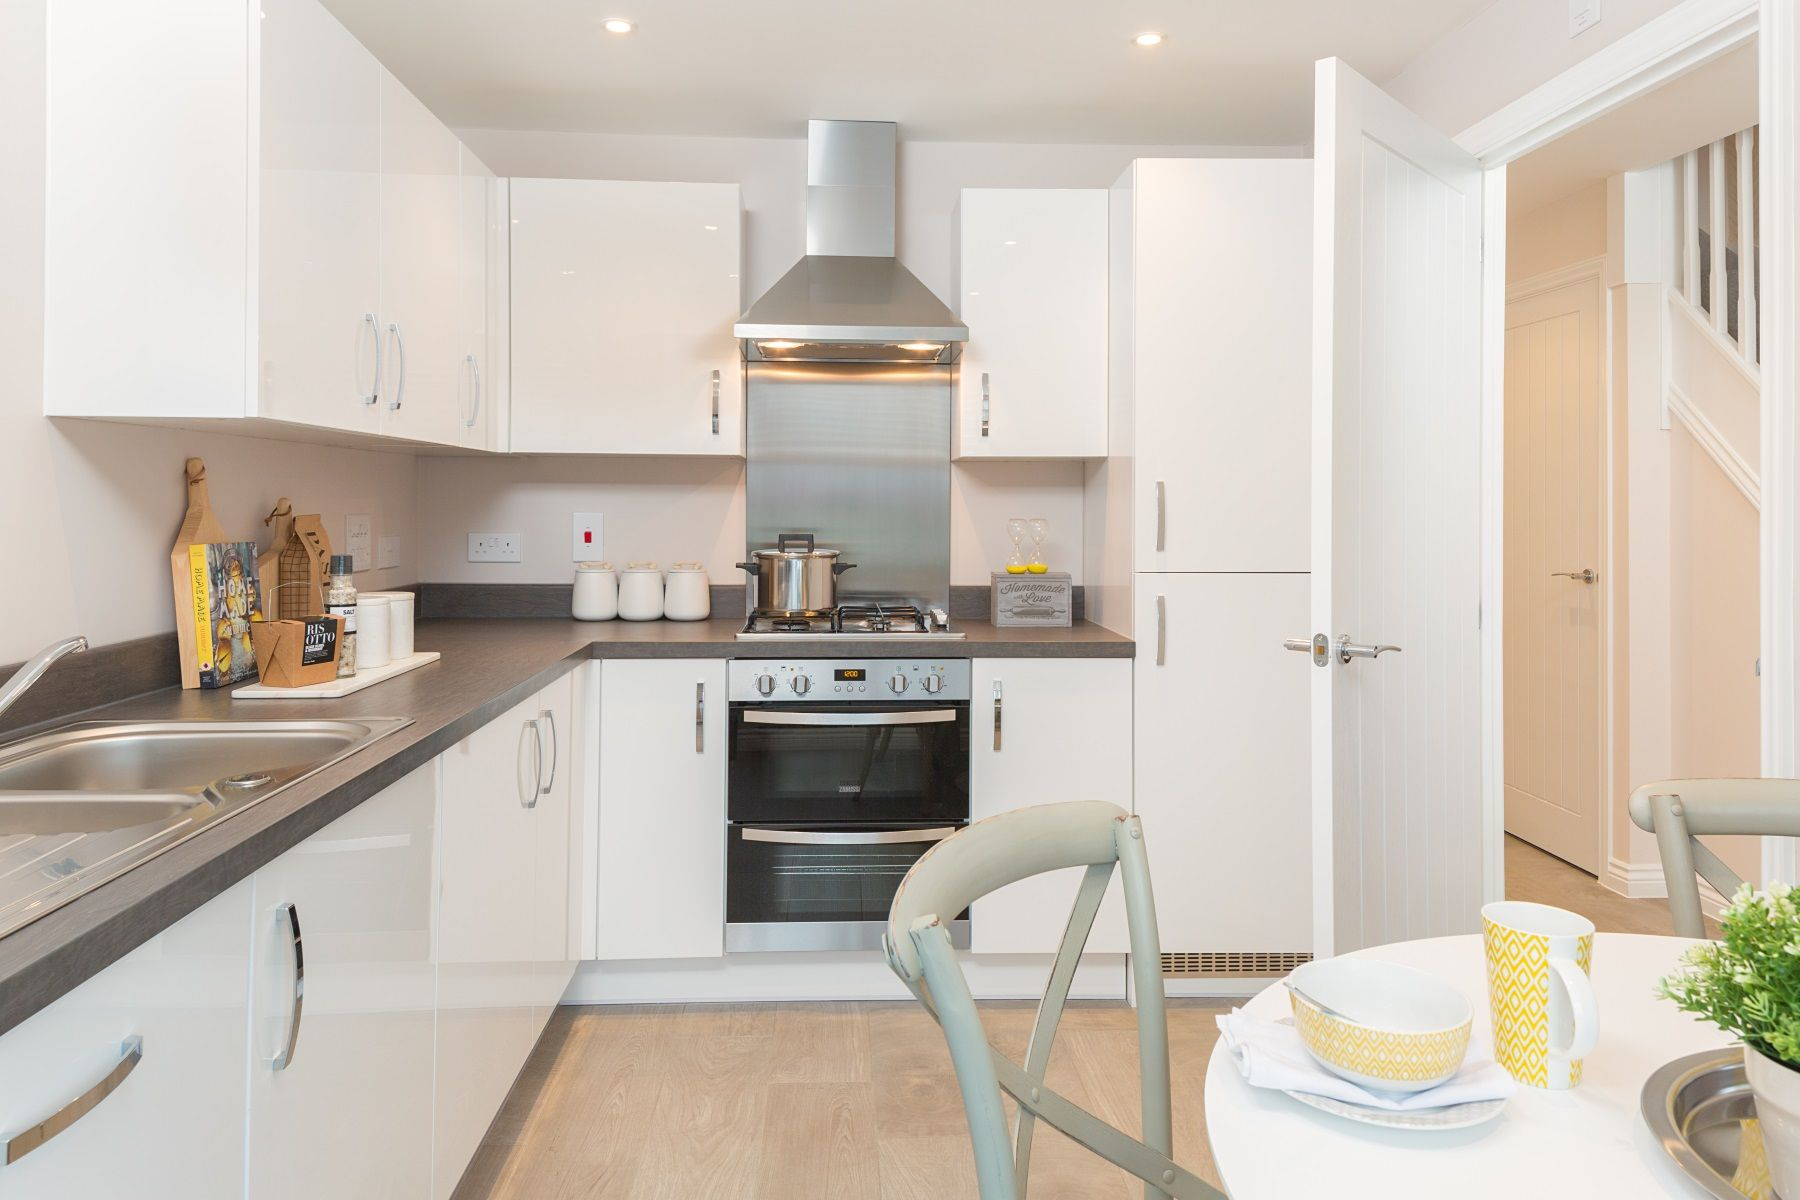 TW Exeter - Plumb Park - Portland example kitchen